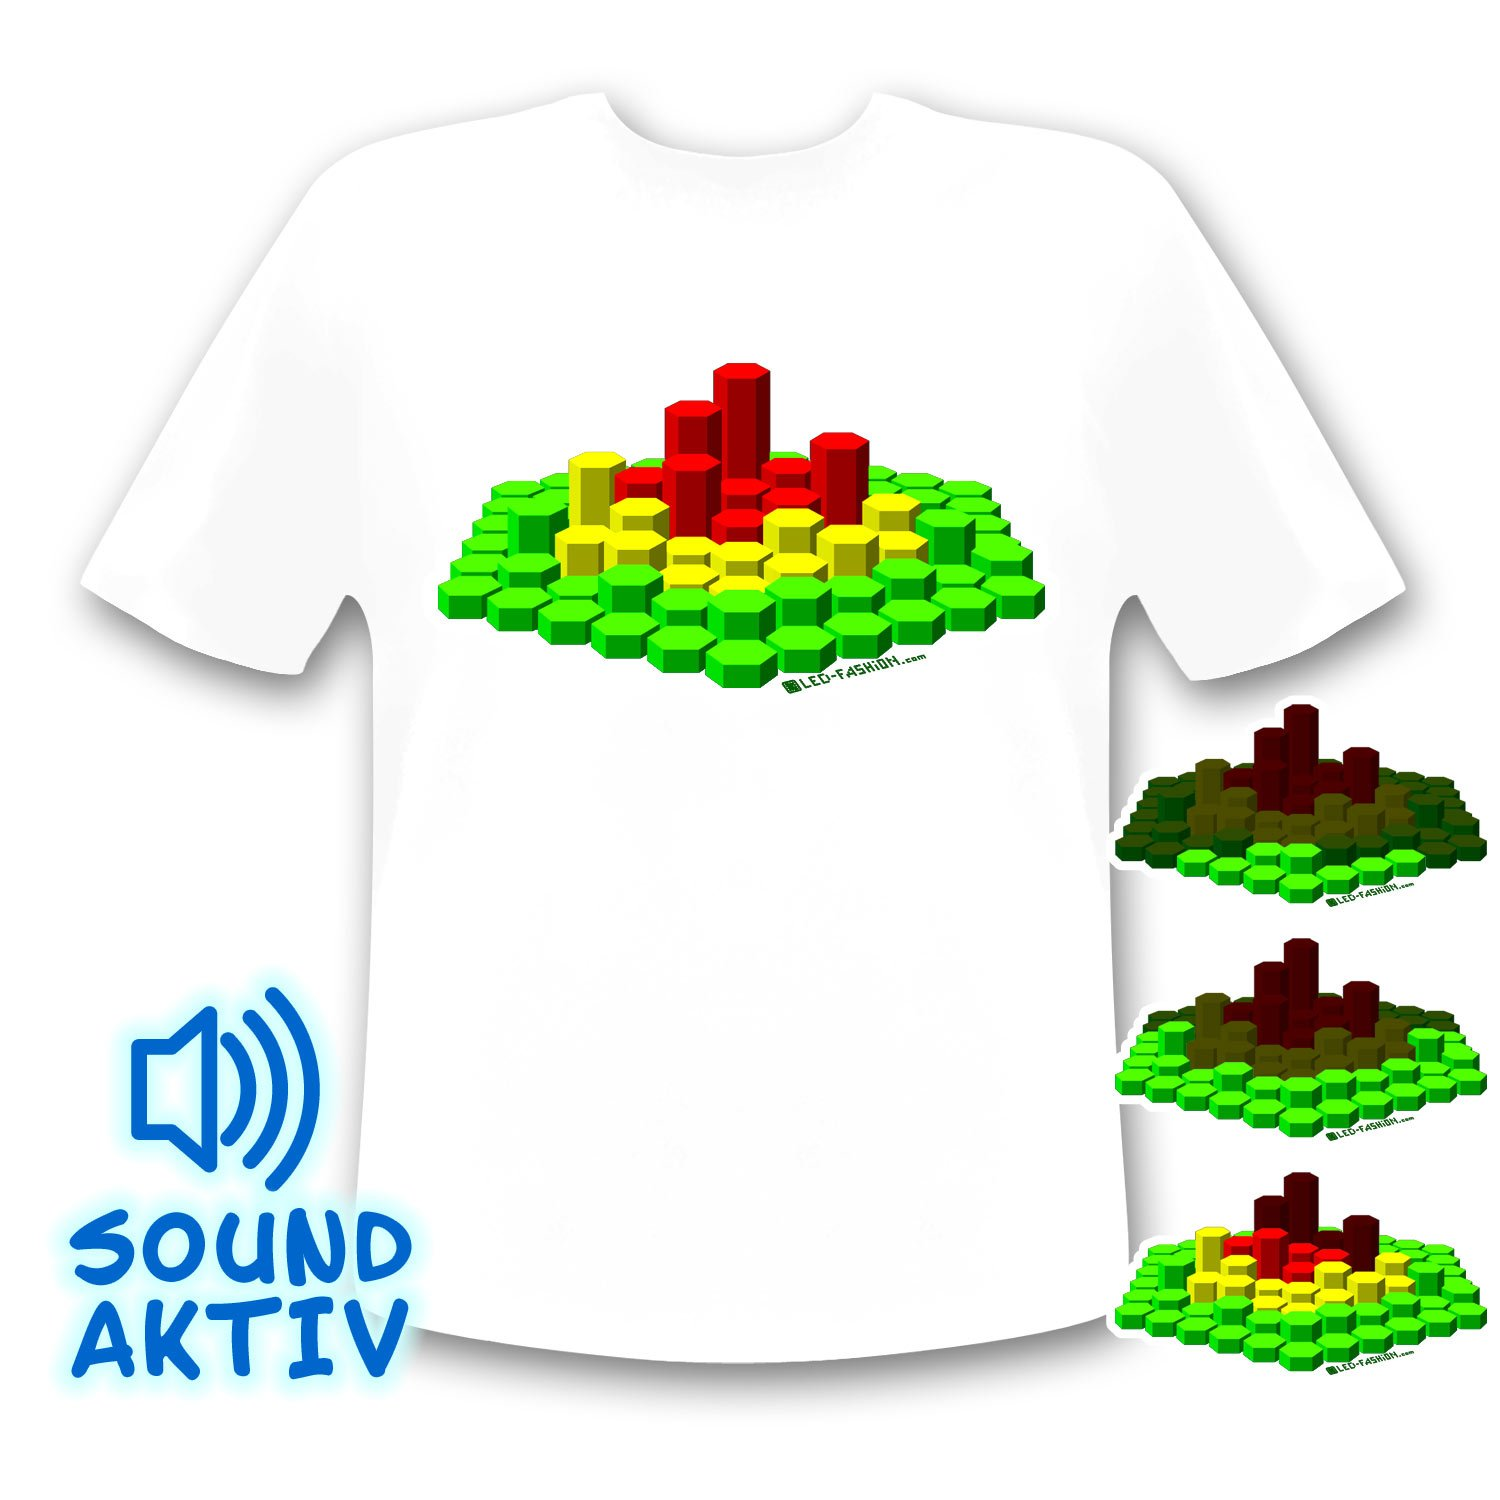 LED-Fashion - Camiseta led con ecualizador (reacciona al sonido), diseño 3D: Amazon.es: Instrumentos musicales